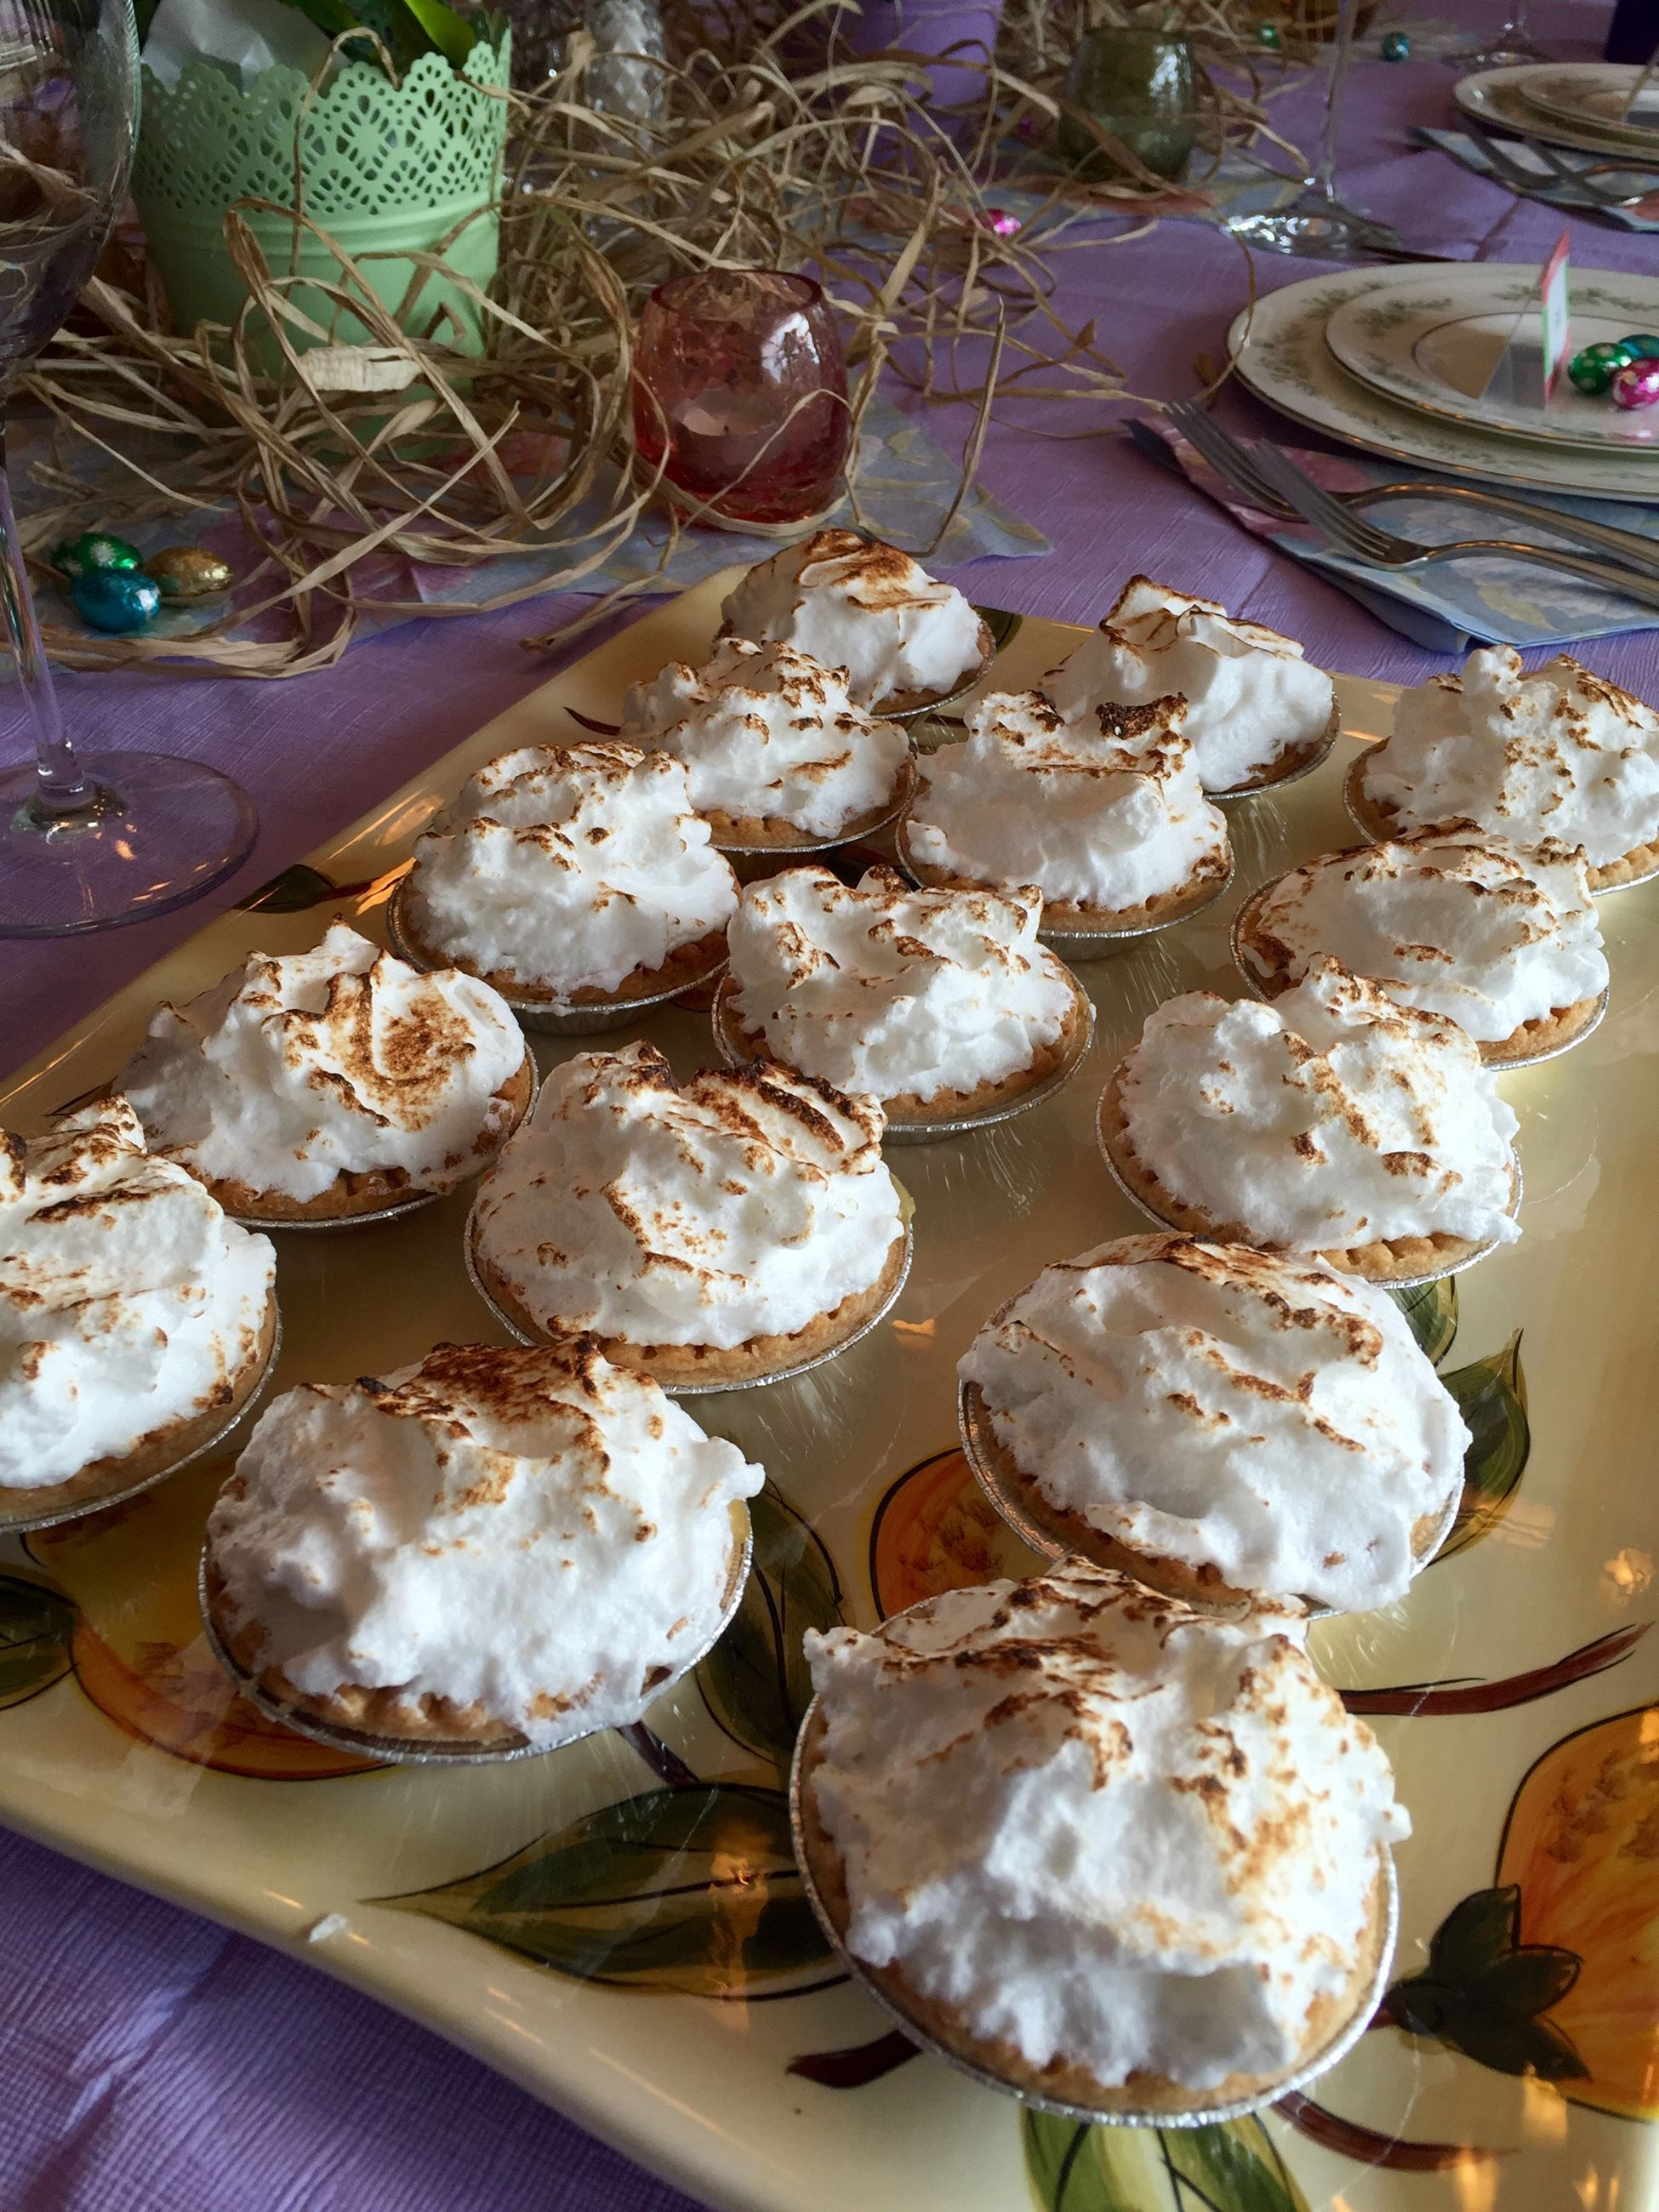 Mini pies by Cathy